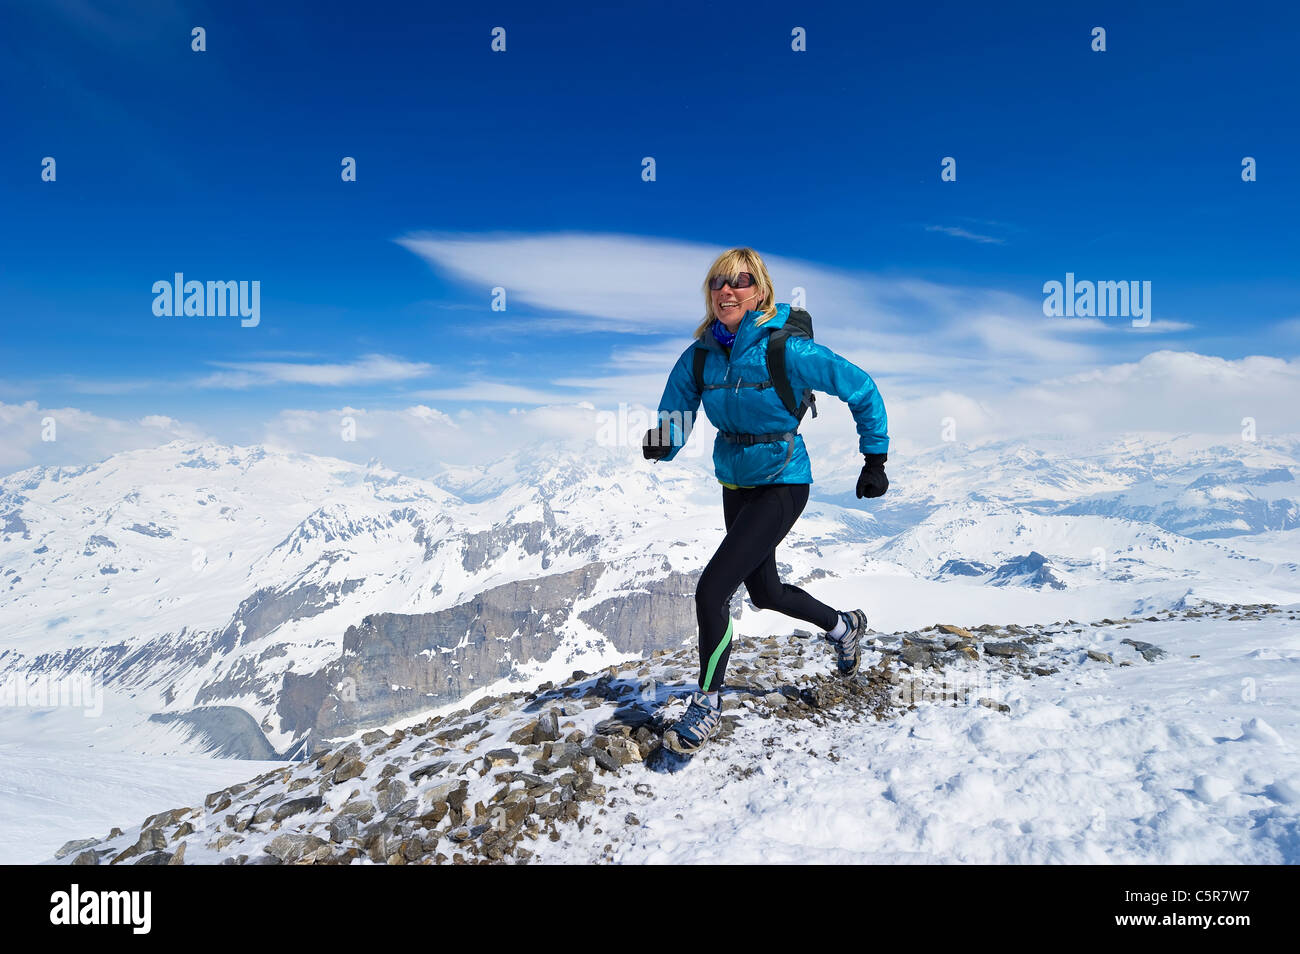 Women enjoying a run across a snowy alpine mountain range. - Stock Image